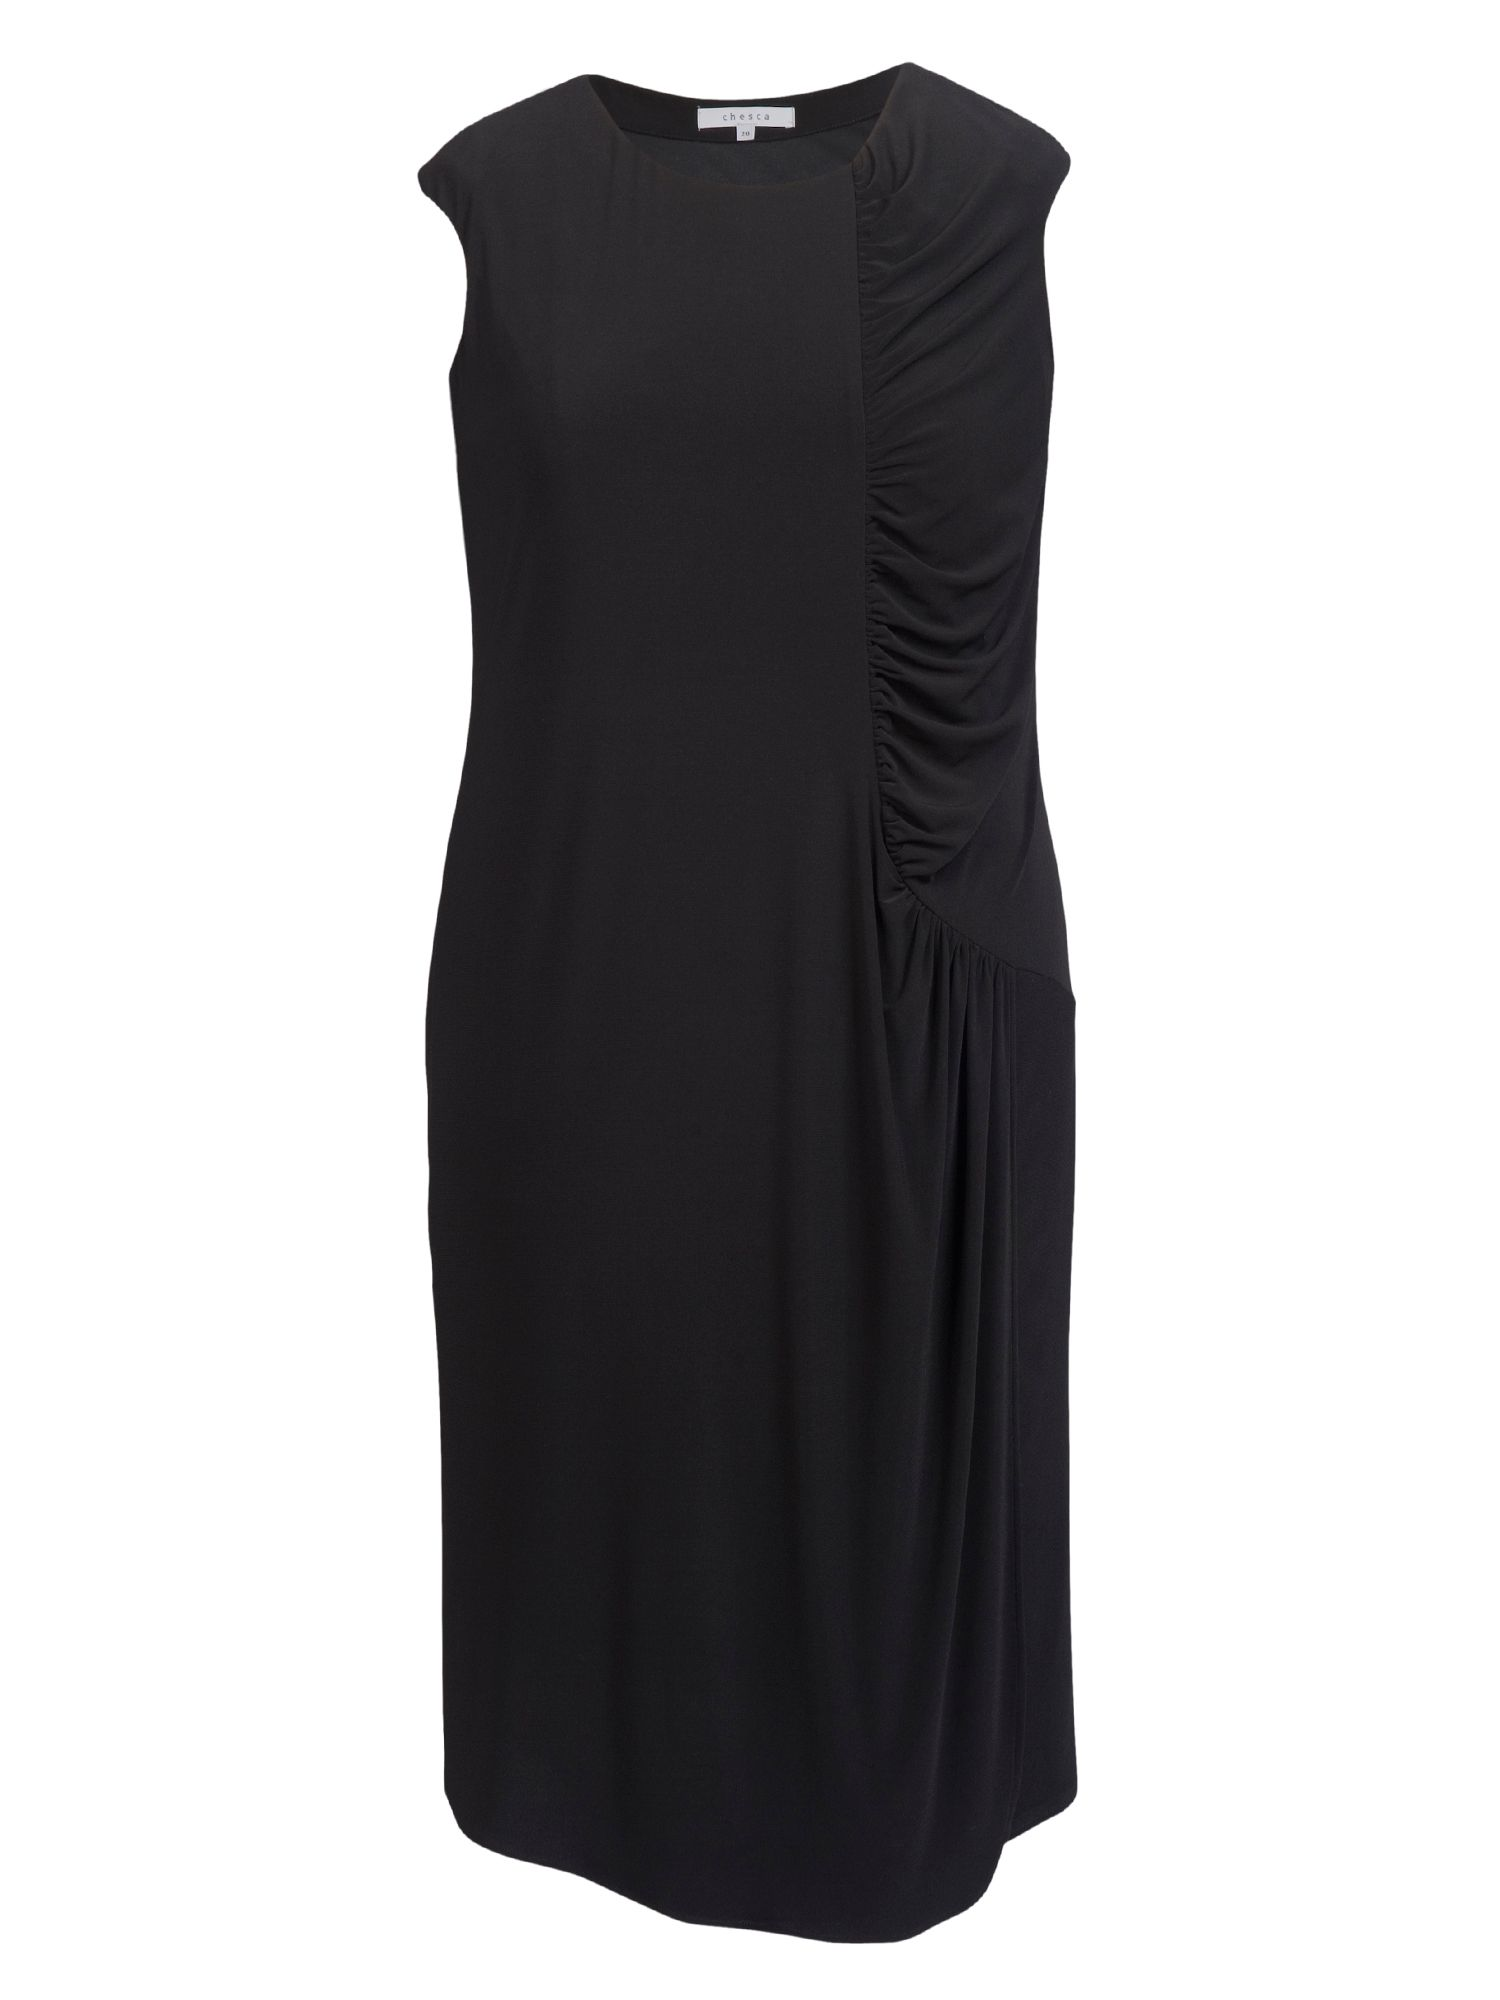 Ruched detail jersey dress